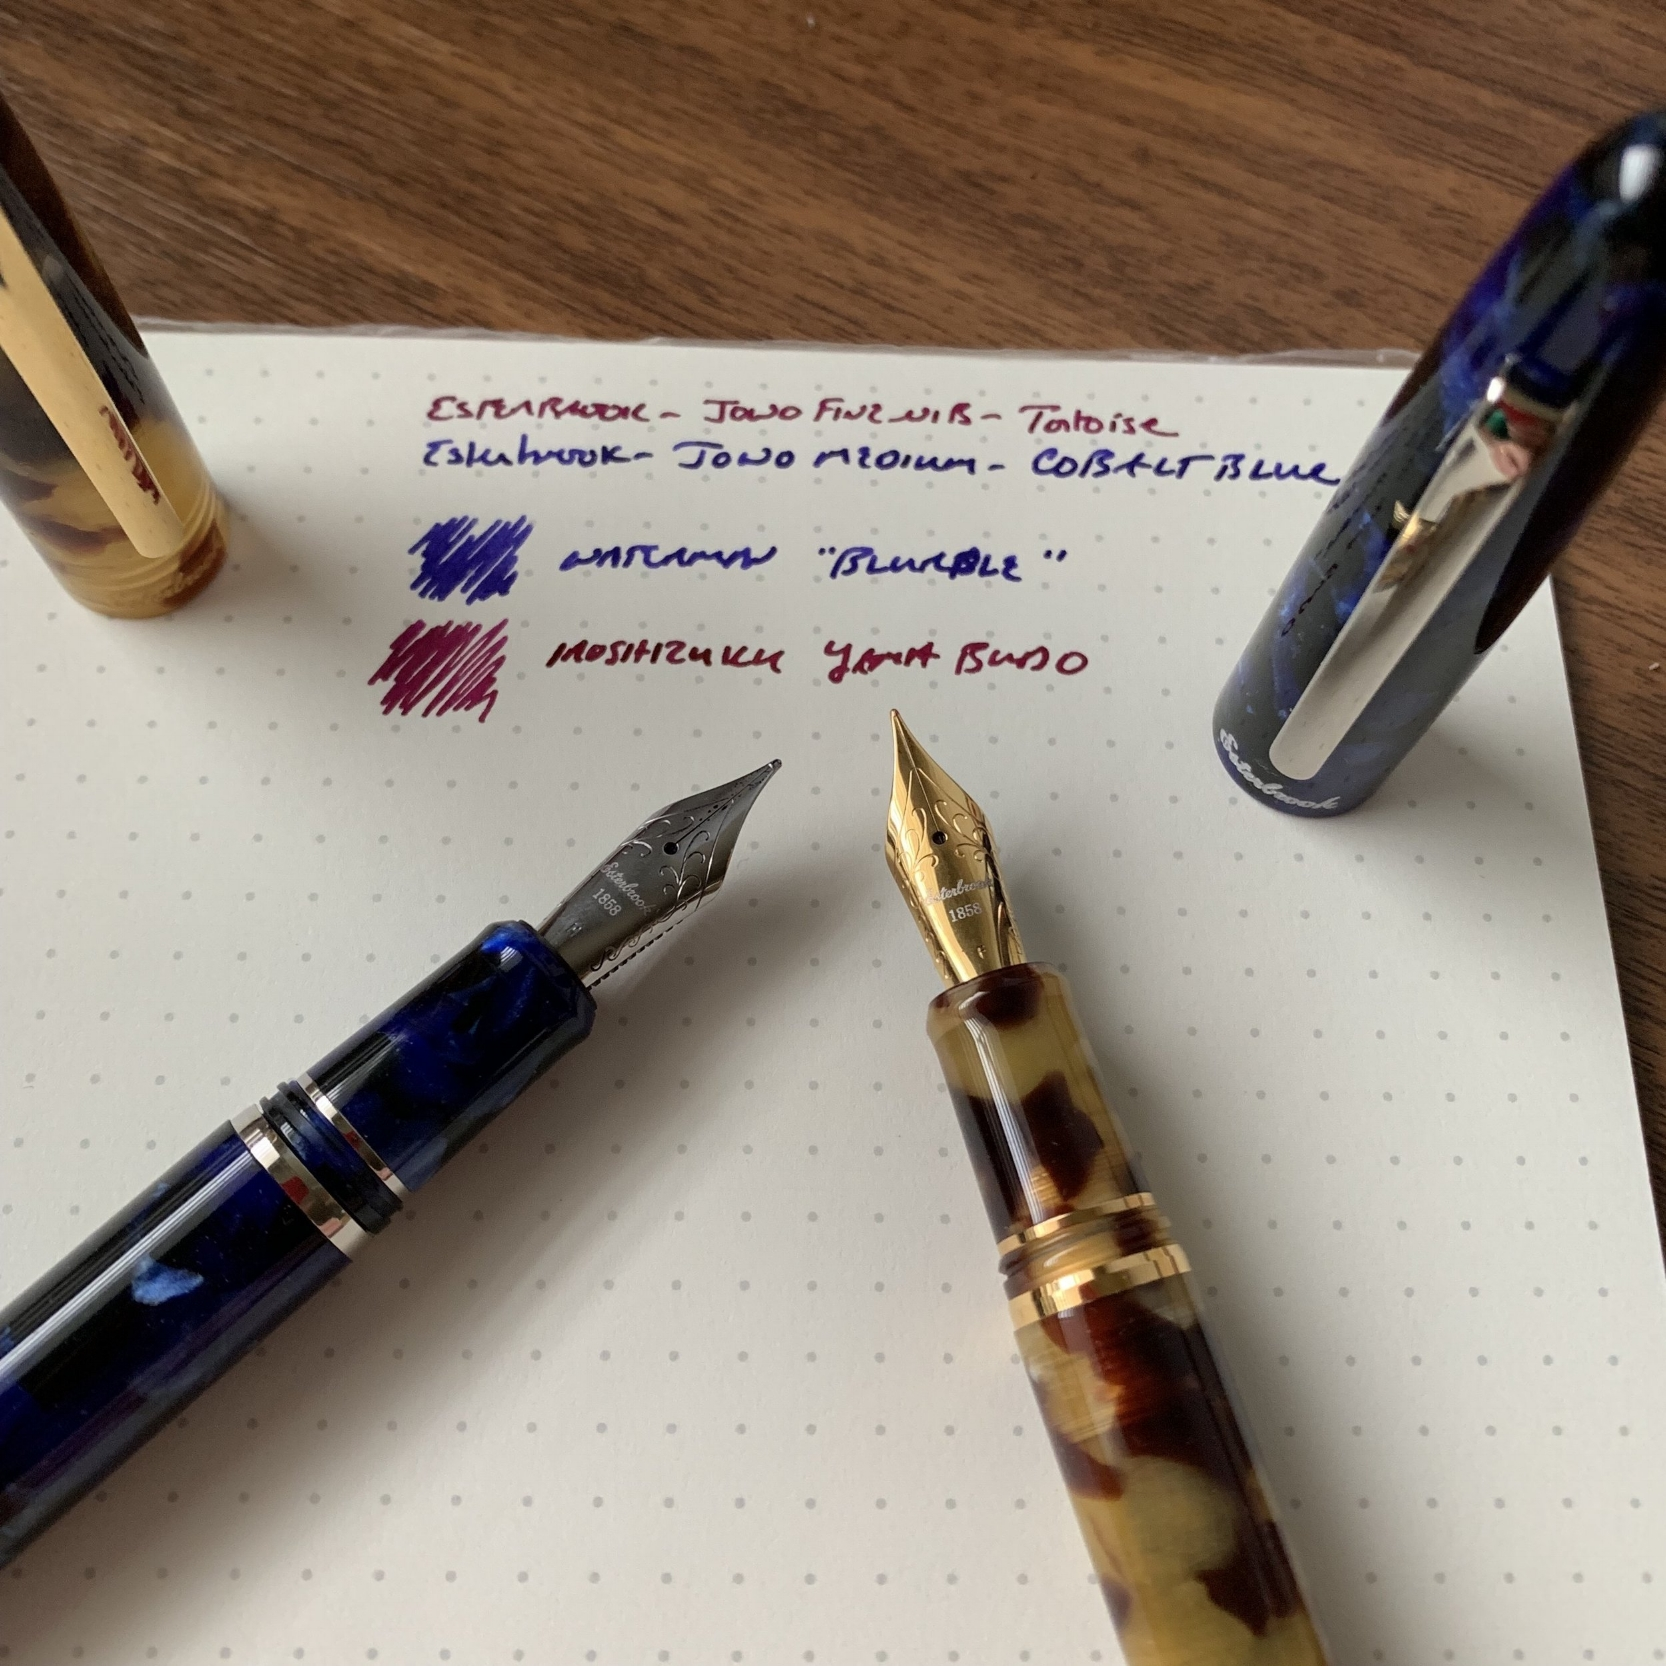 For my two review pens, I chose Esties in Cobalt Blue with chrome trim and Tortoise with gold-plated trim. An ebony model is also available, and you can opt for either trim on any color pen.